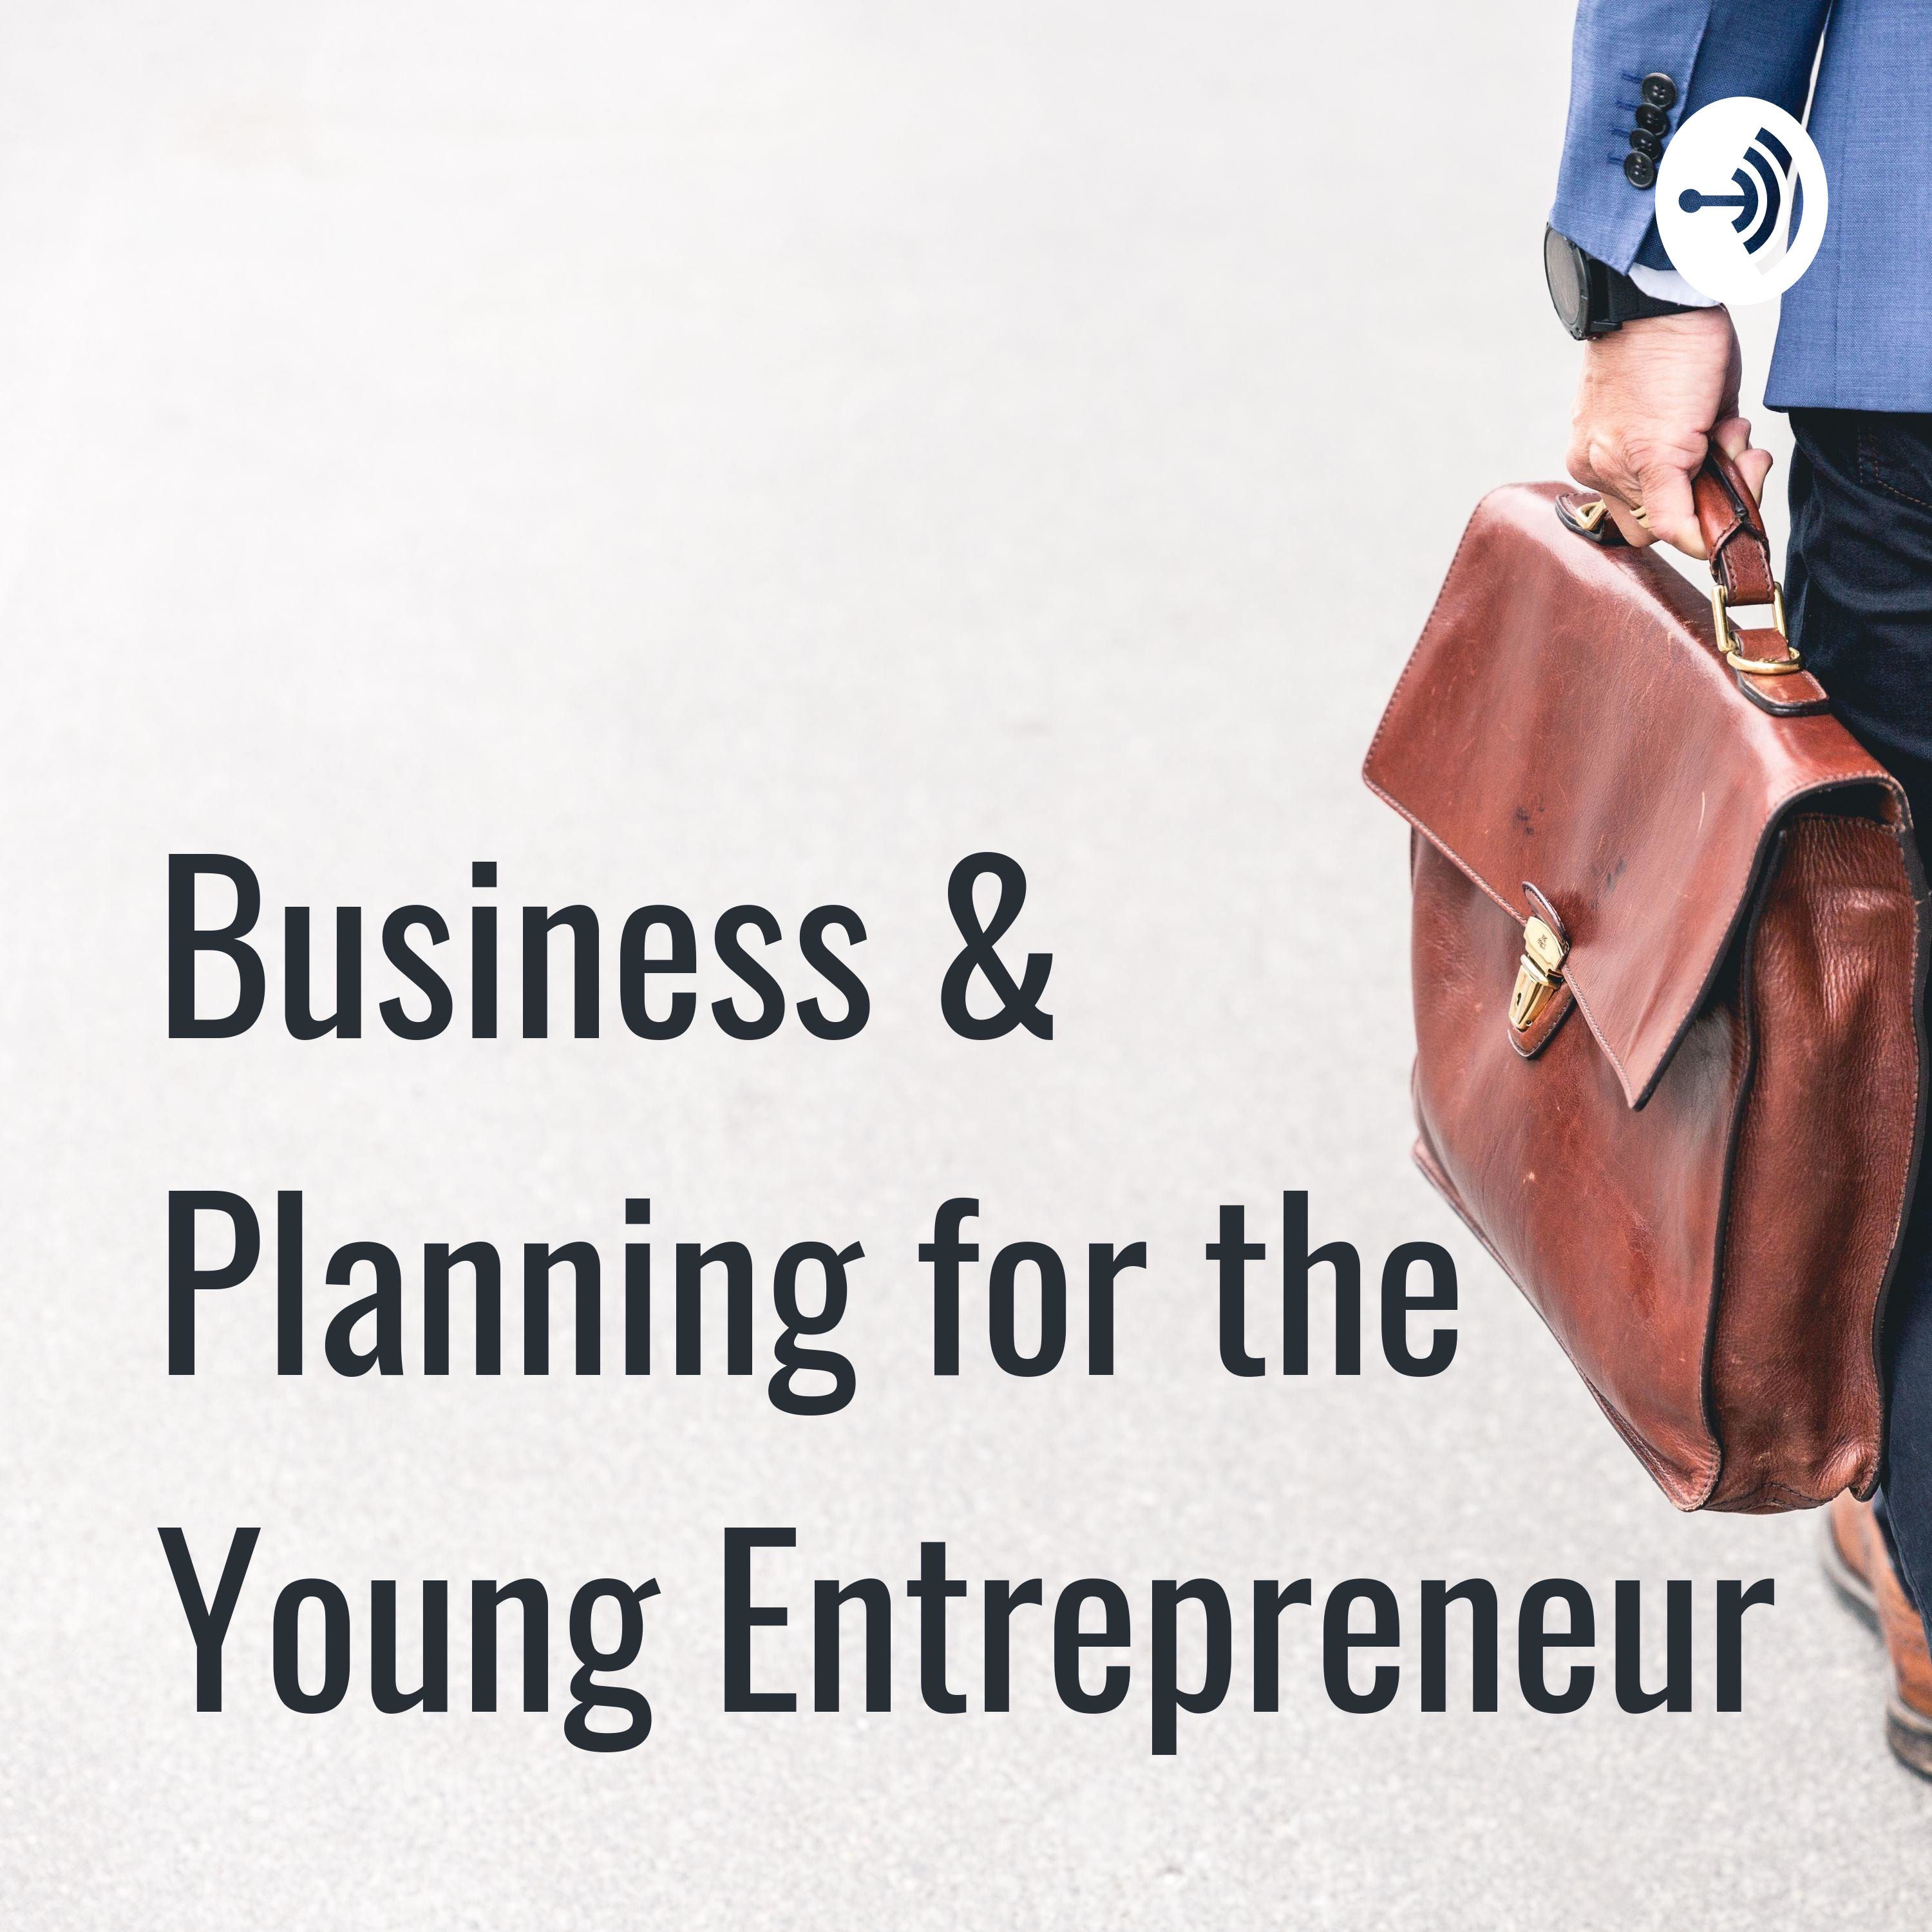 Business & Planning for the Young Entrepreneur (Trailer)